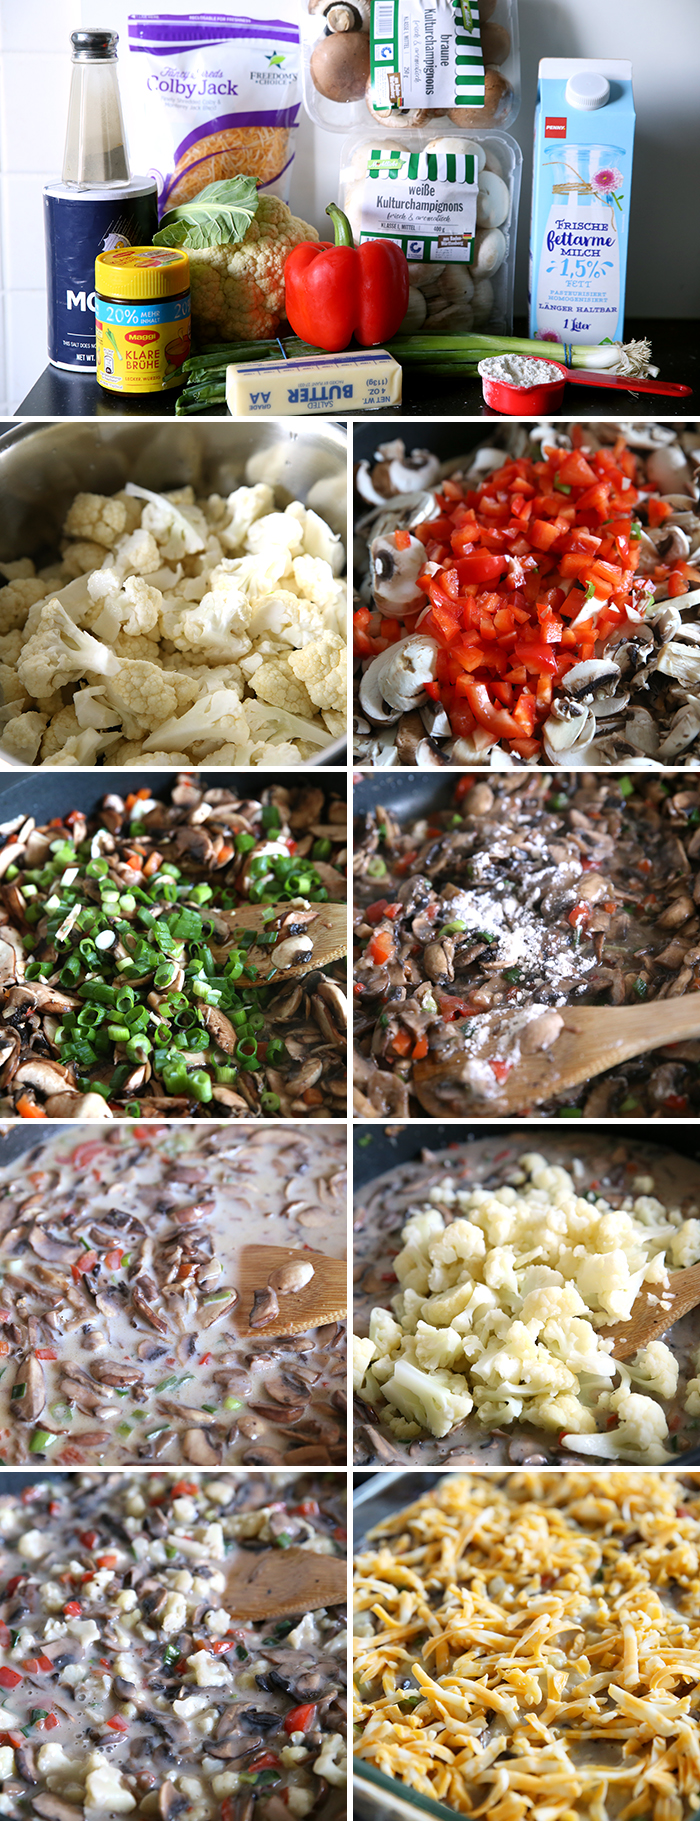 step by step pictures for making company califlower a creamy vegetable side dish. there are 9 pictures in the collage.